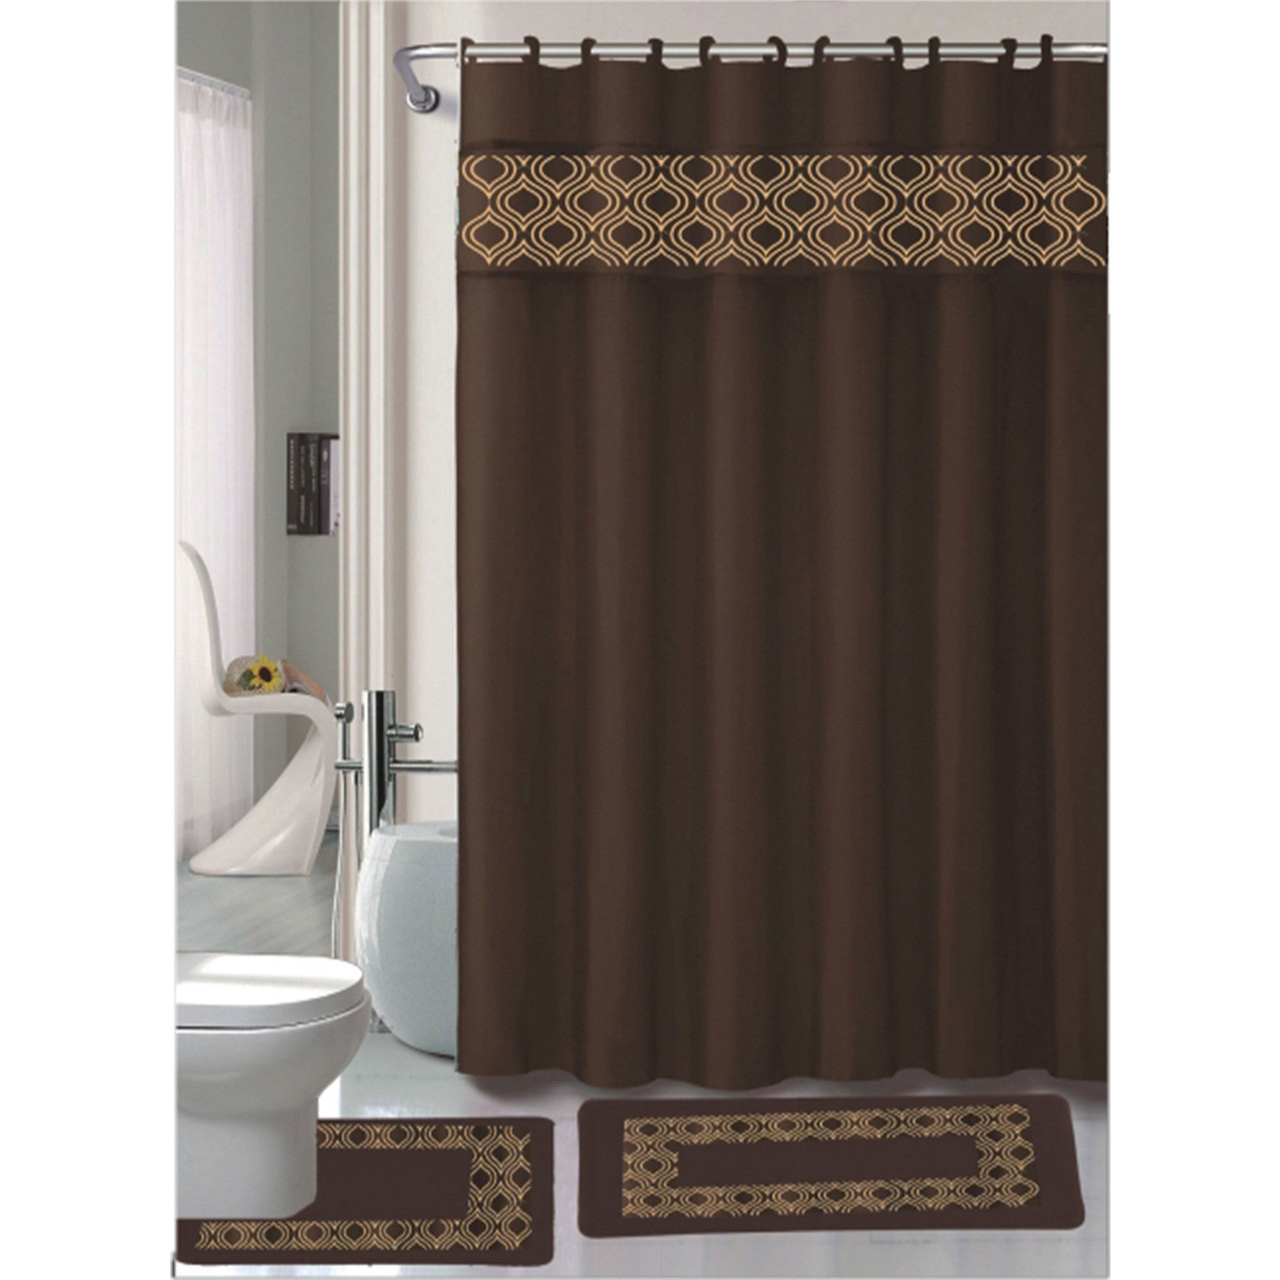 Gabrielle Chocolate 15 Pc Bathroom Accessories Set, Bath Mat, Contour Rug, Shower  Curtain